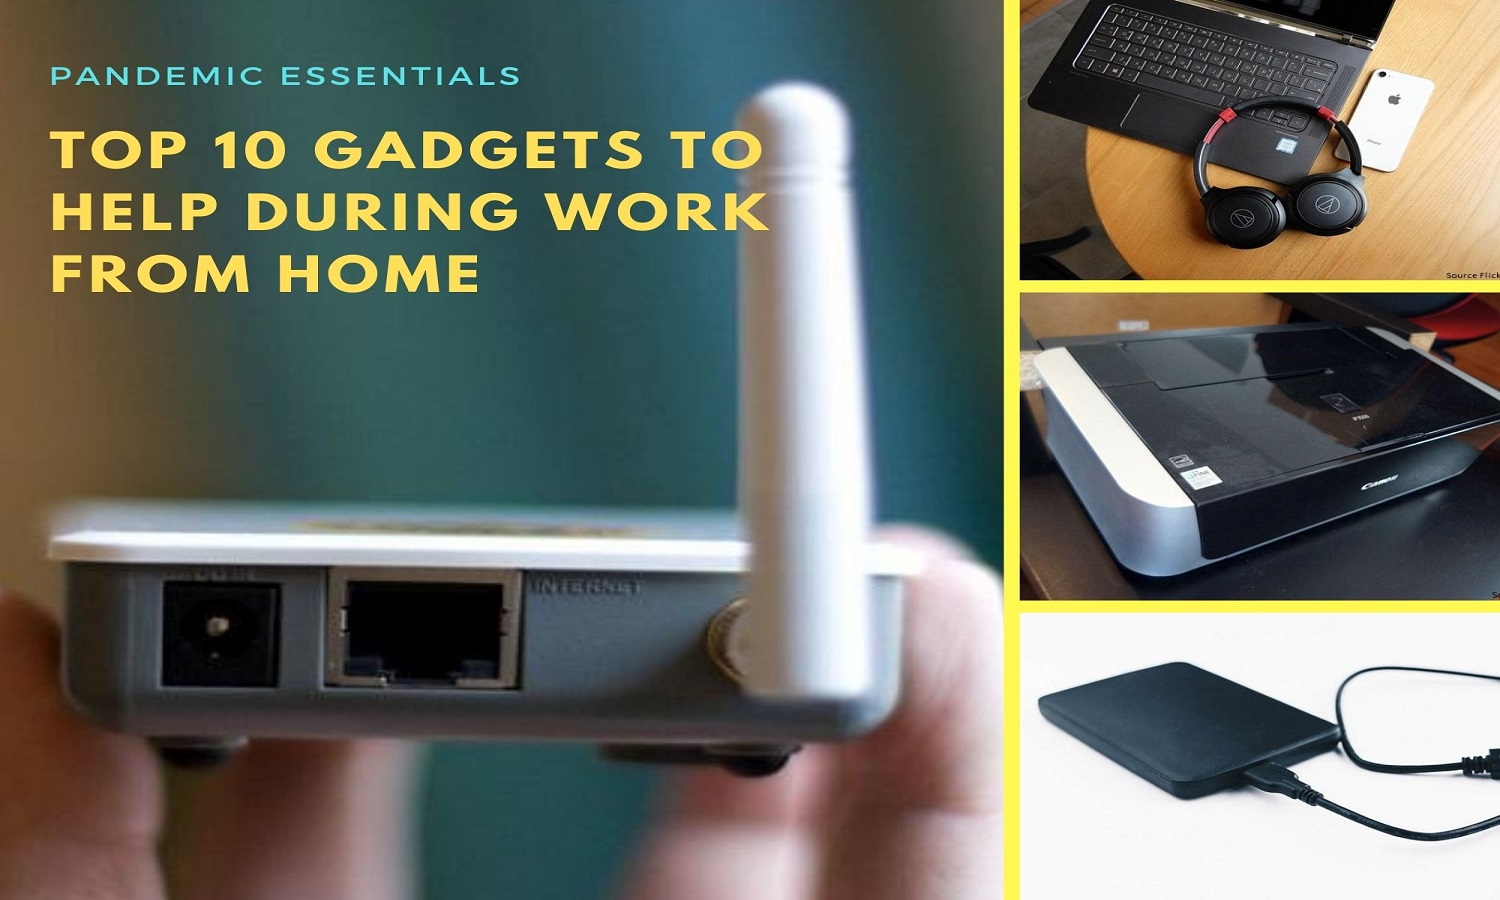 List Of Top 10 Gadgets To Help During Work From Home